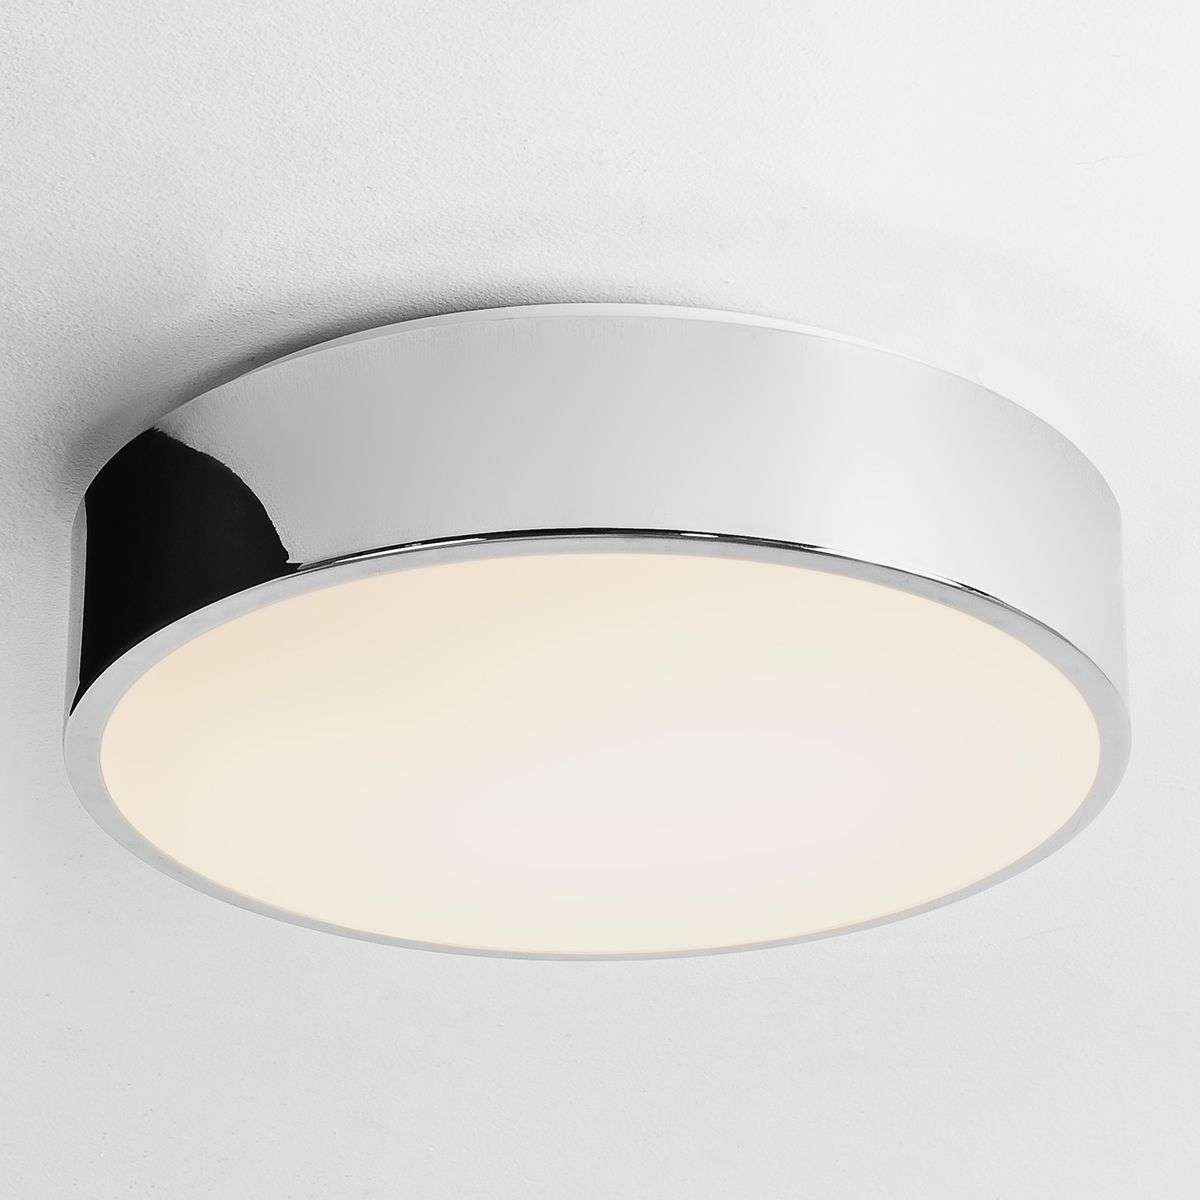 Mallon Plus Ceiling Light Modern Chrome-1020084-32